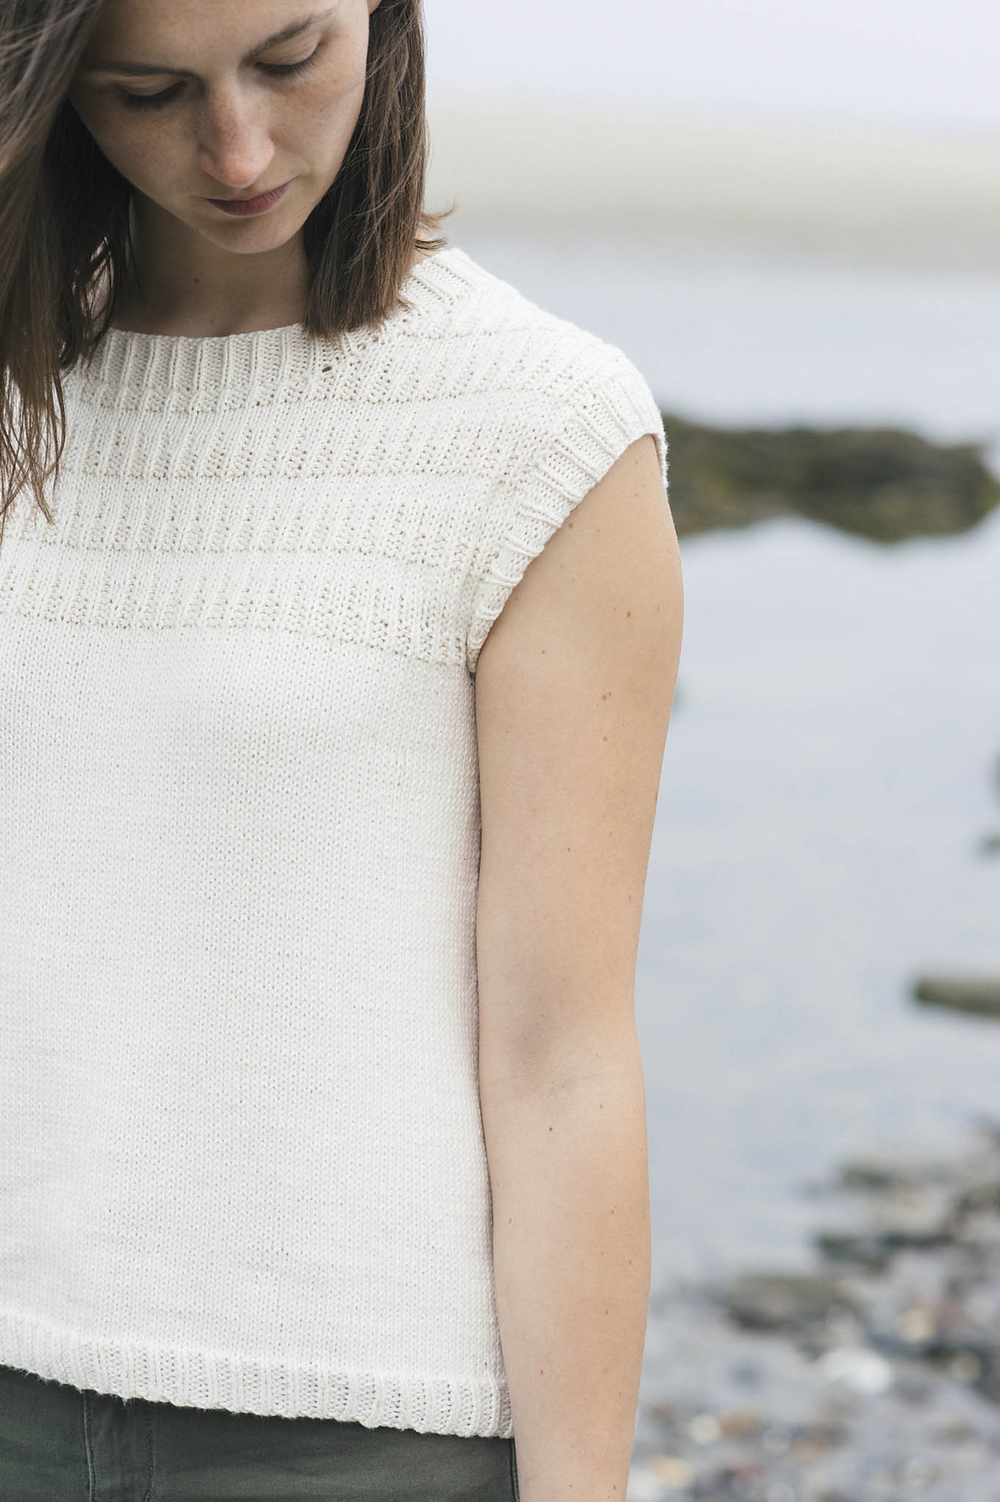 Atlee by Leah B. Thibault for Quince & Co,.